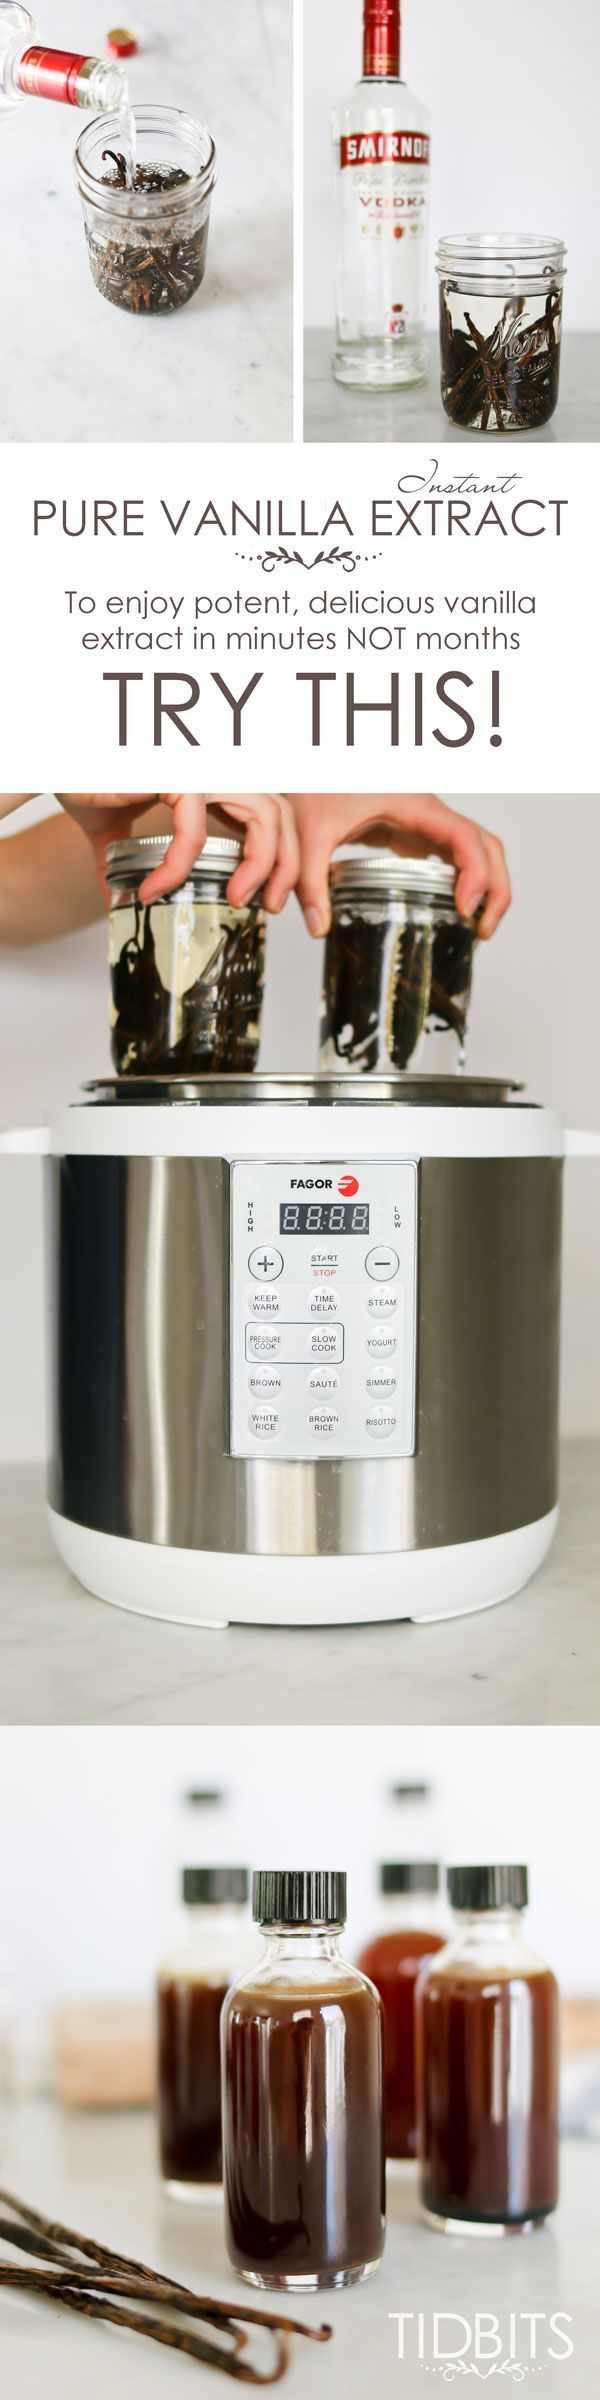 how to cook a cake in a electric pressure cooker